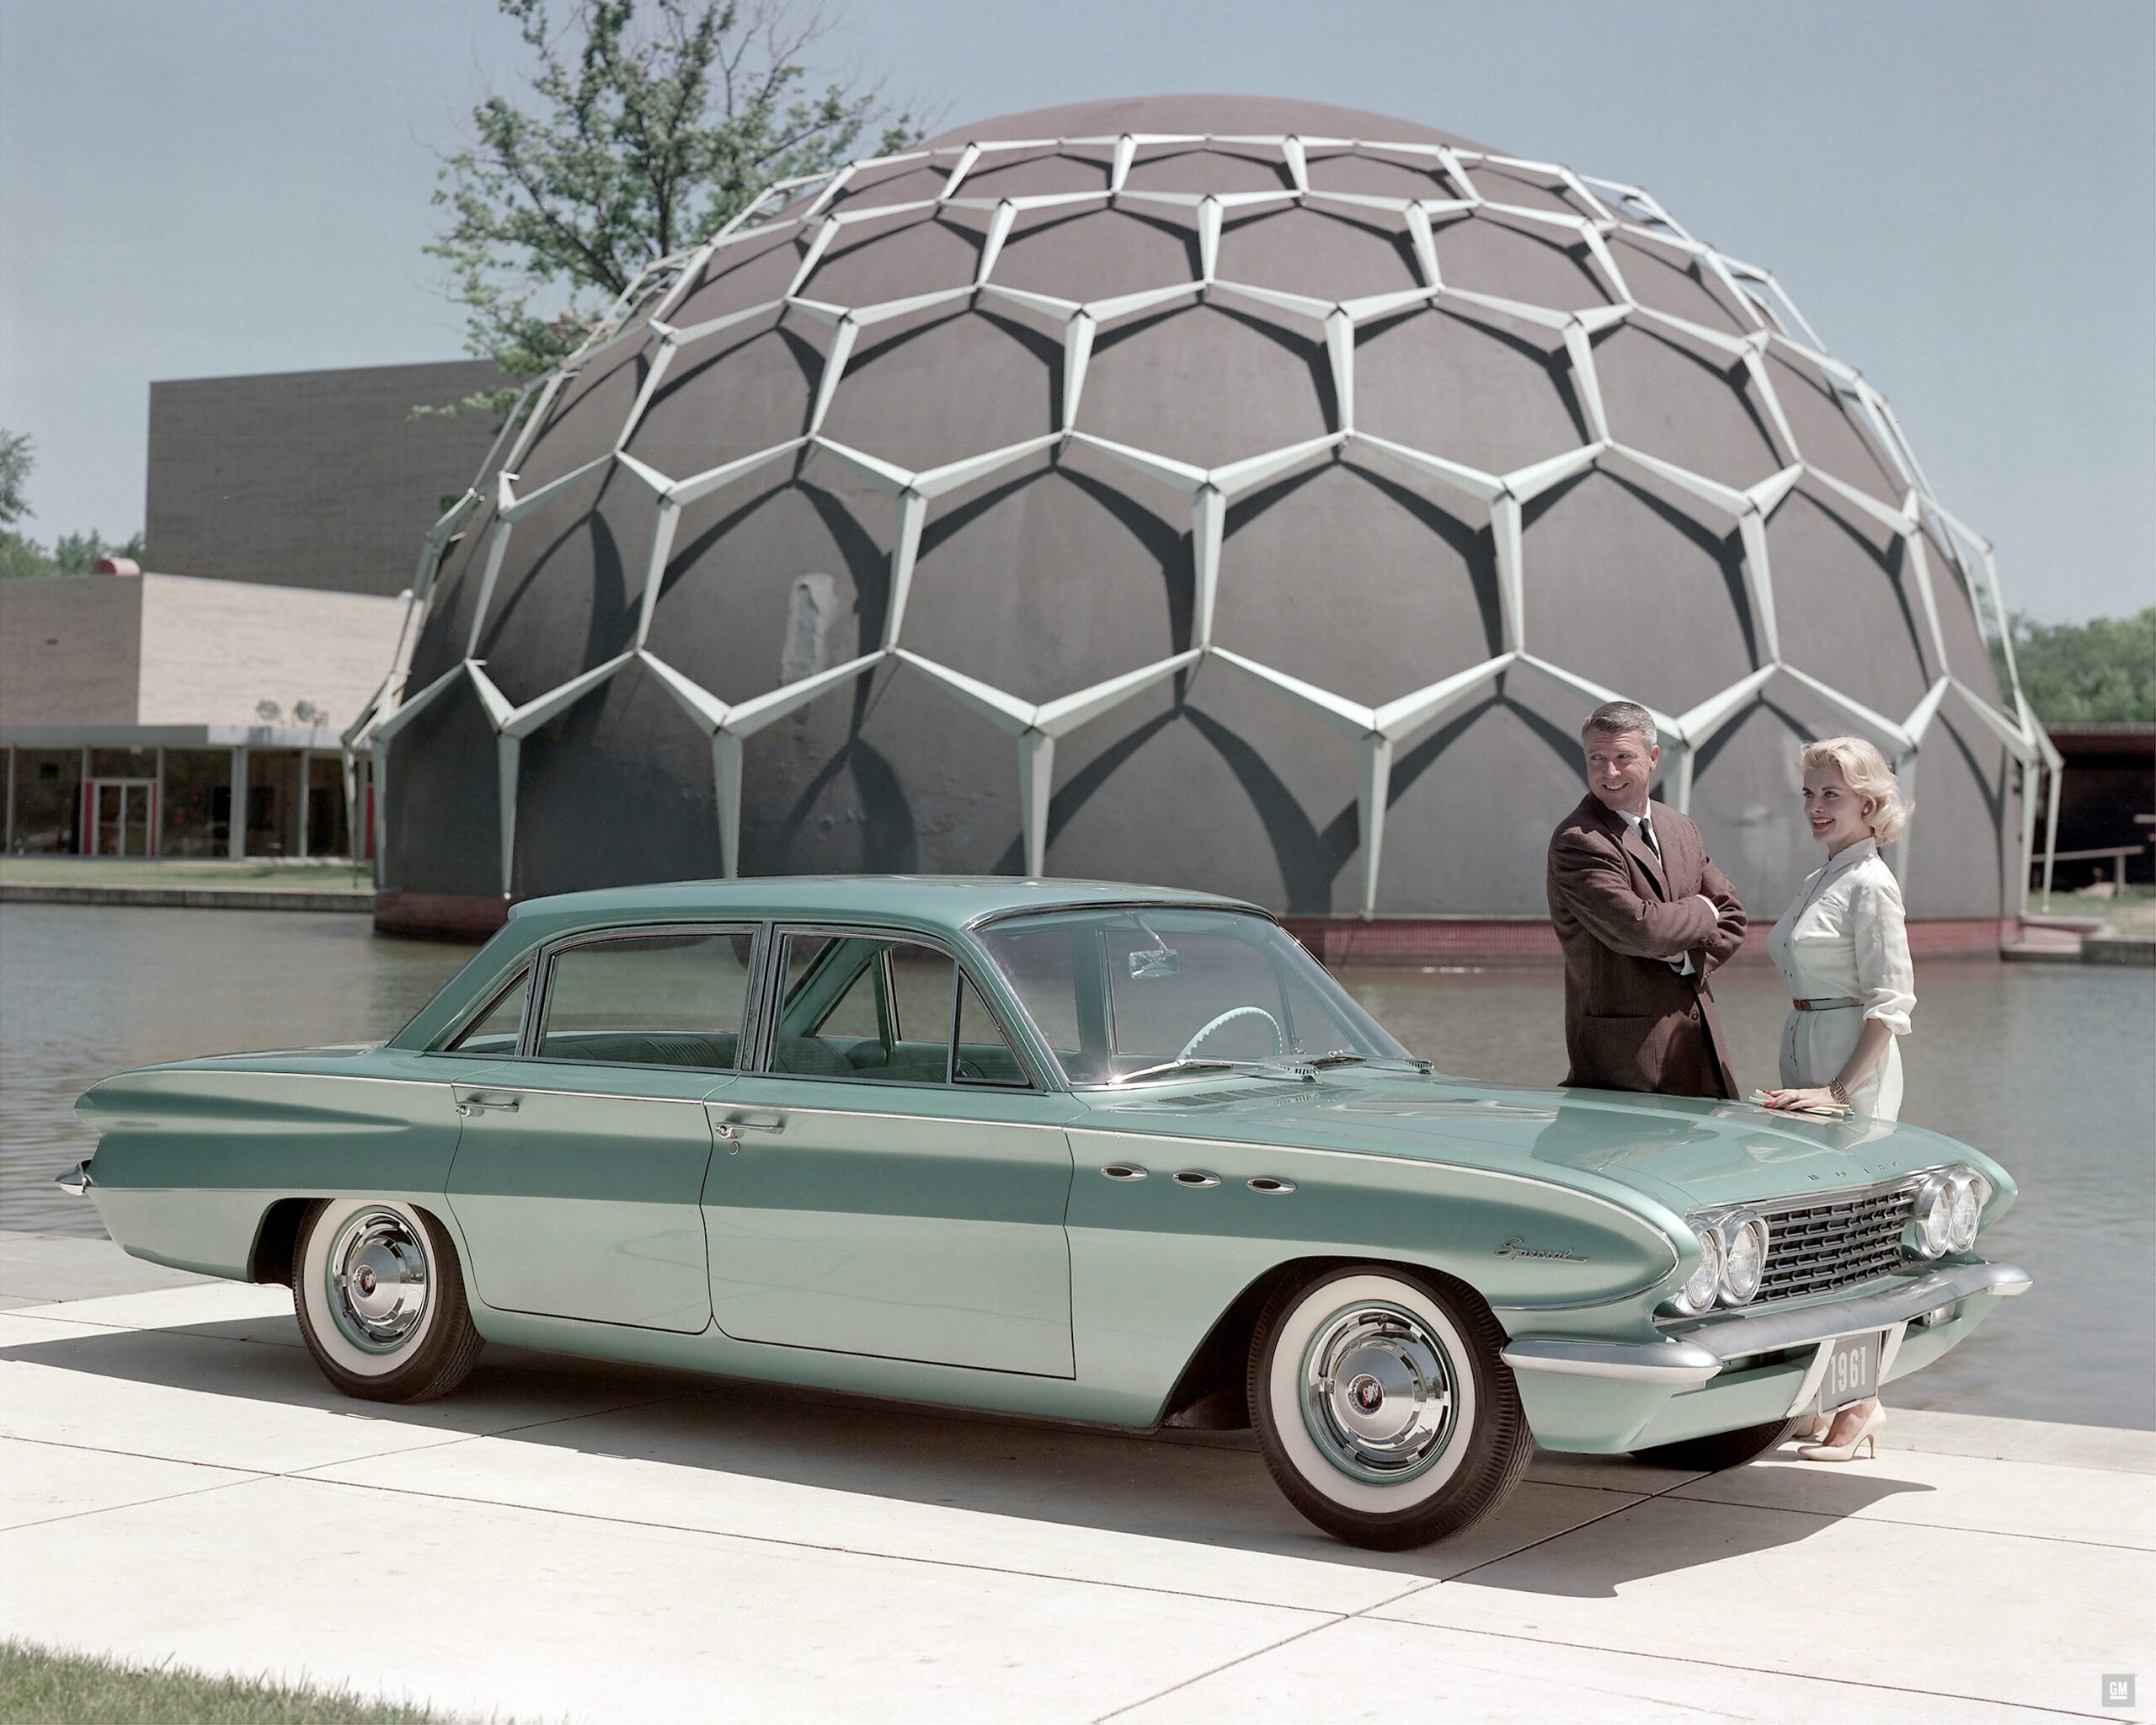 The 1961 Buick Special was an entry level model.